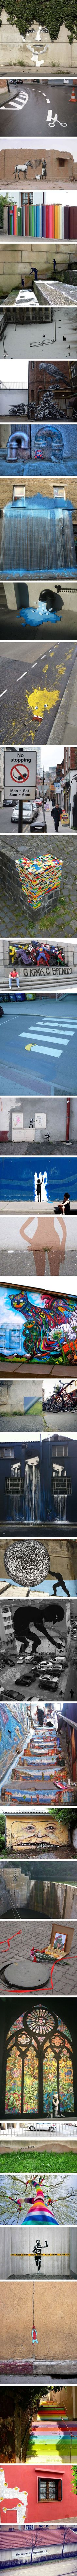 Awesome street art: